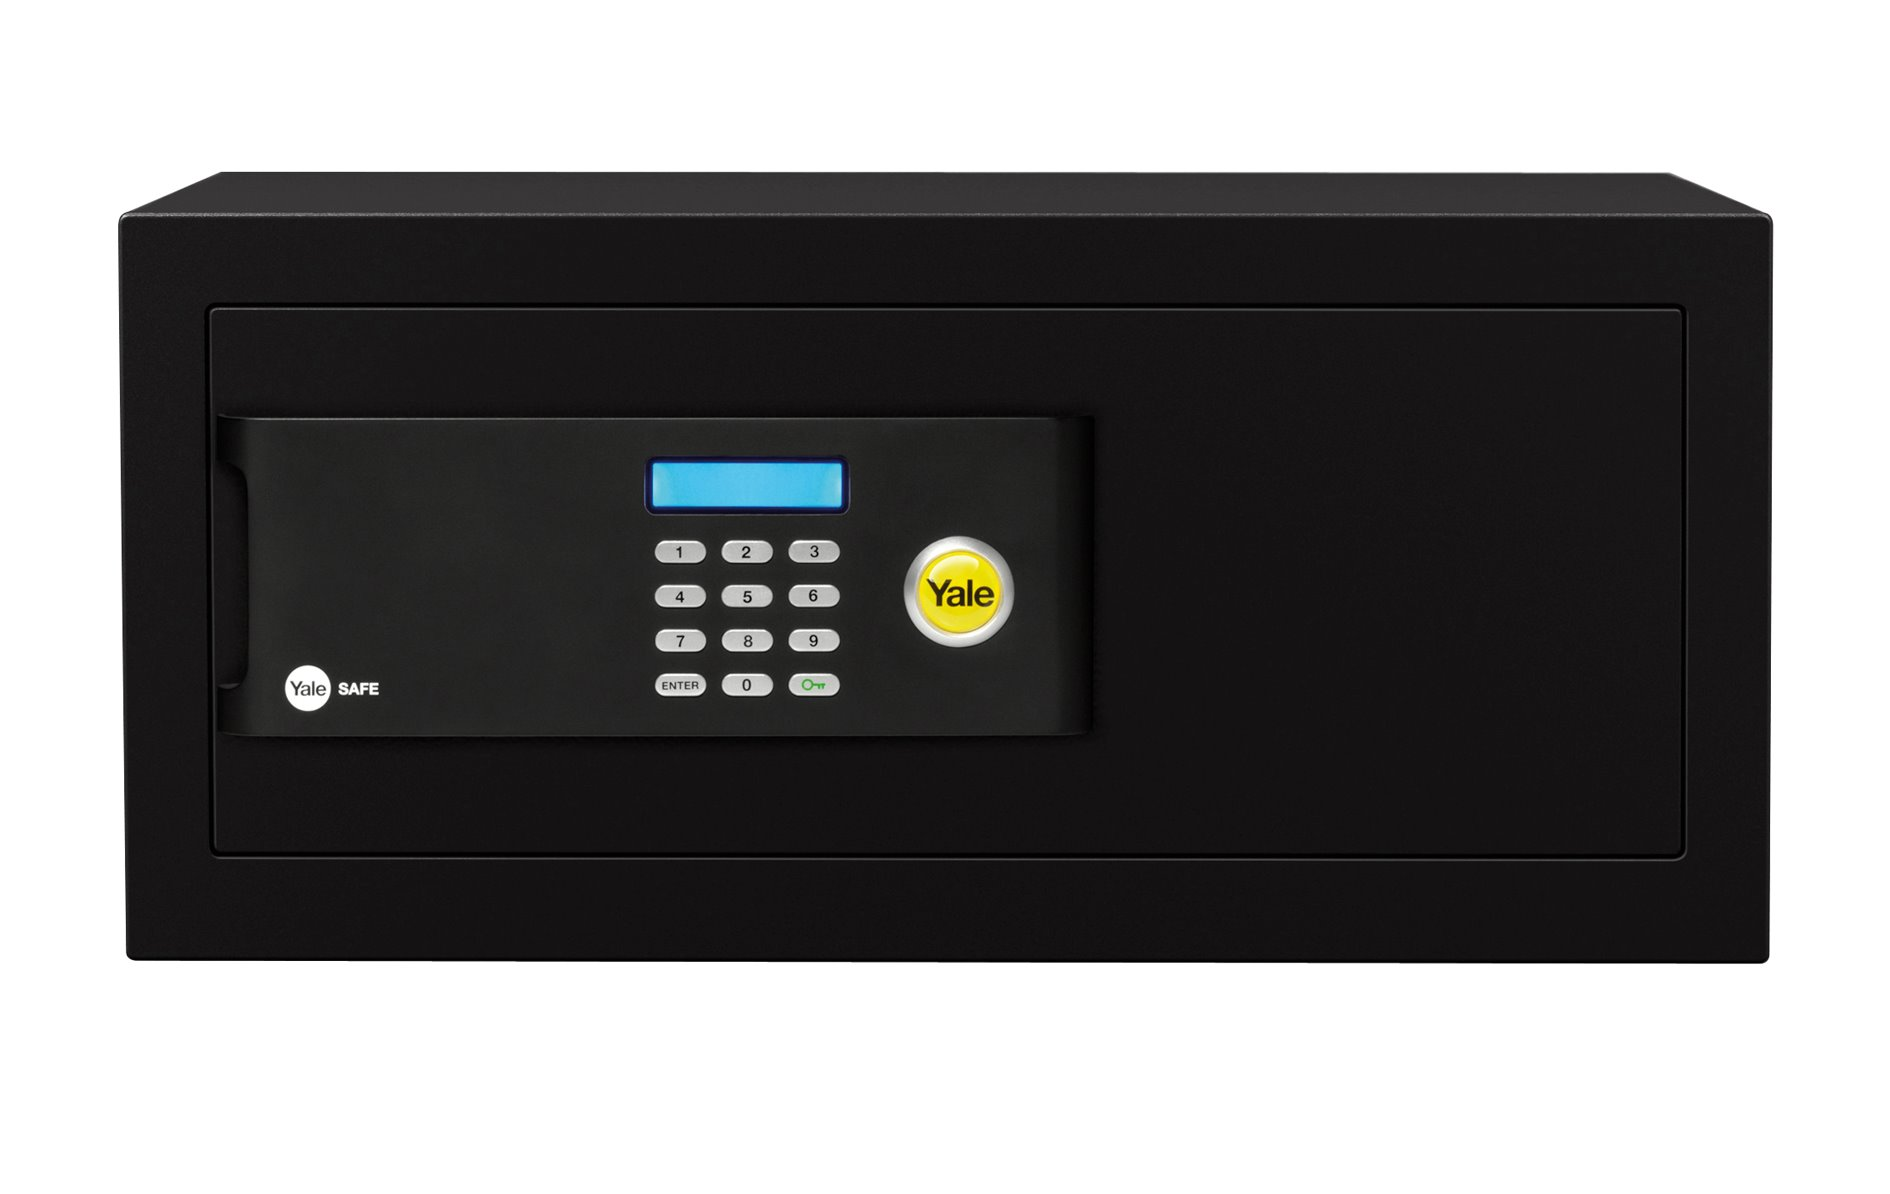 YLB/200/EB1 - Laptop safe